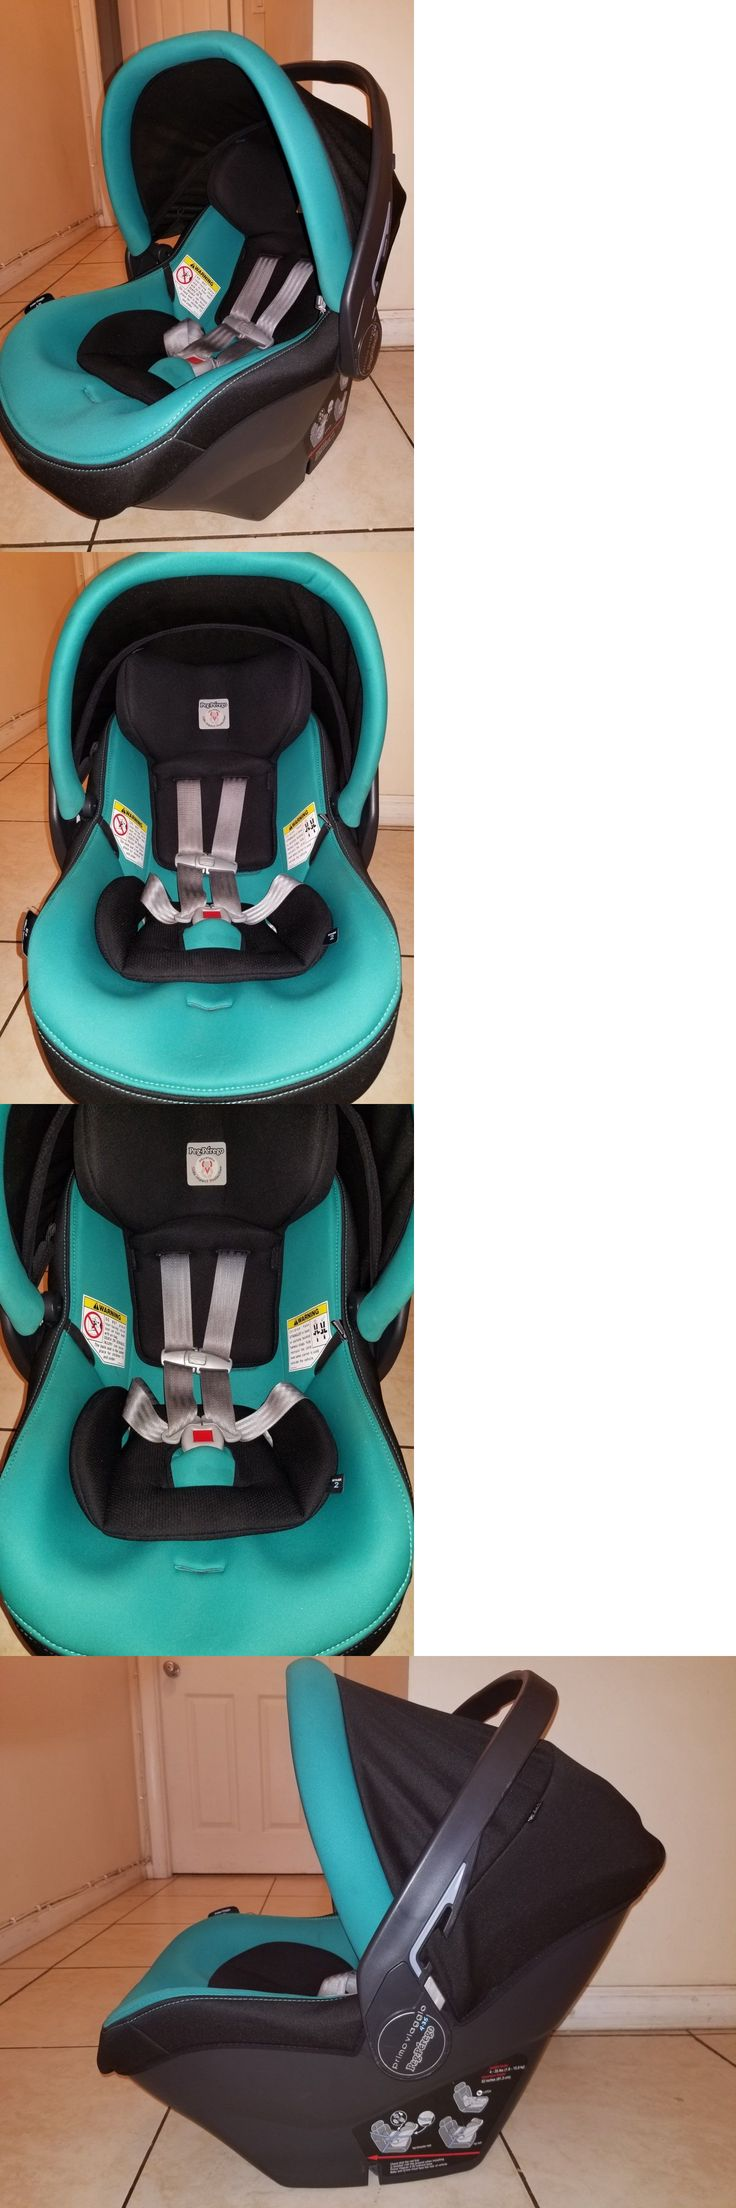 Convertible Car Seat 5-40lbs 66695: 2015 Peg Perego Primo Viaggio 4 35 Infant Car Seat, Aquamarine -> BUY IT NOW ONLY: $59.99 on eBay!